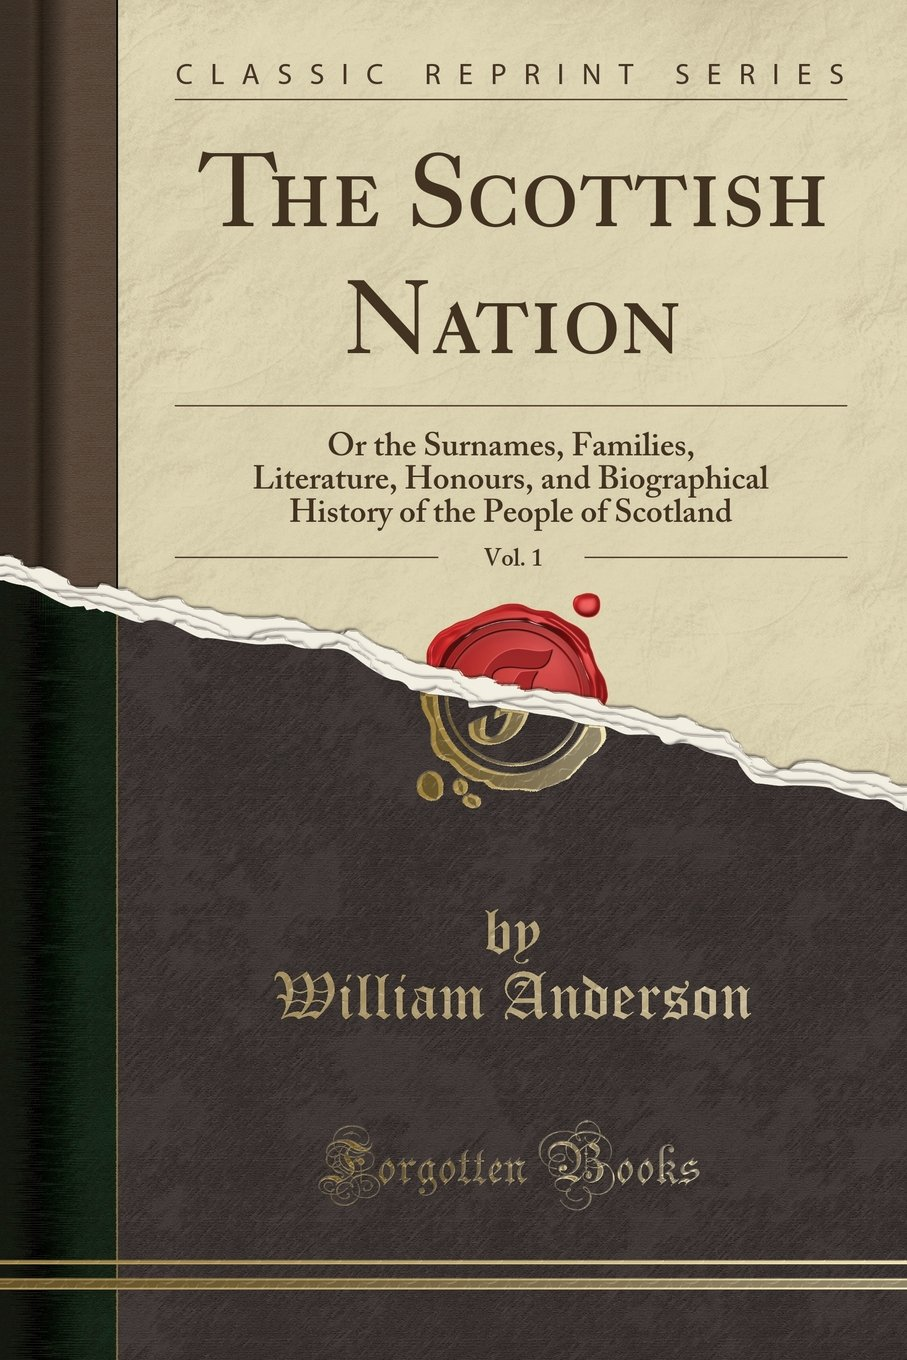 The Scottish Nation, Vol. 1: Or the Surnames, Families, Literature, Honours, and Biographical History of the People of Scotland (Classic Reprint) pdf